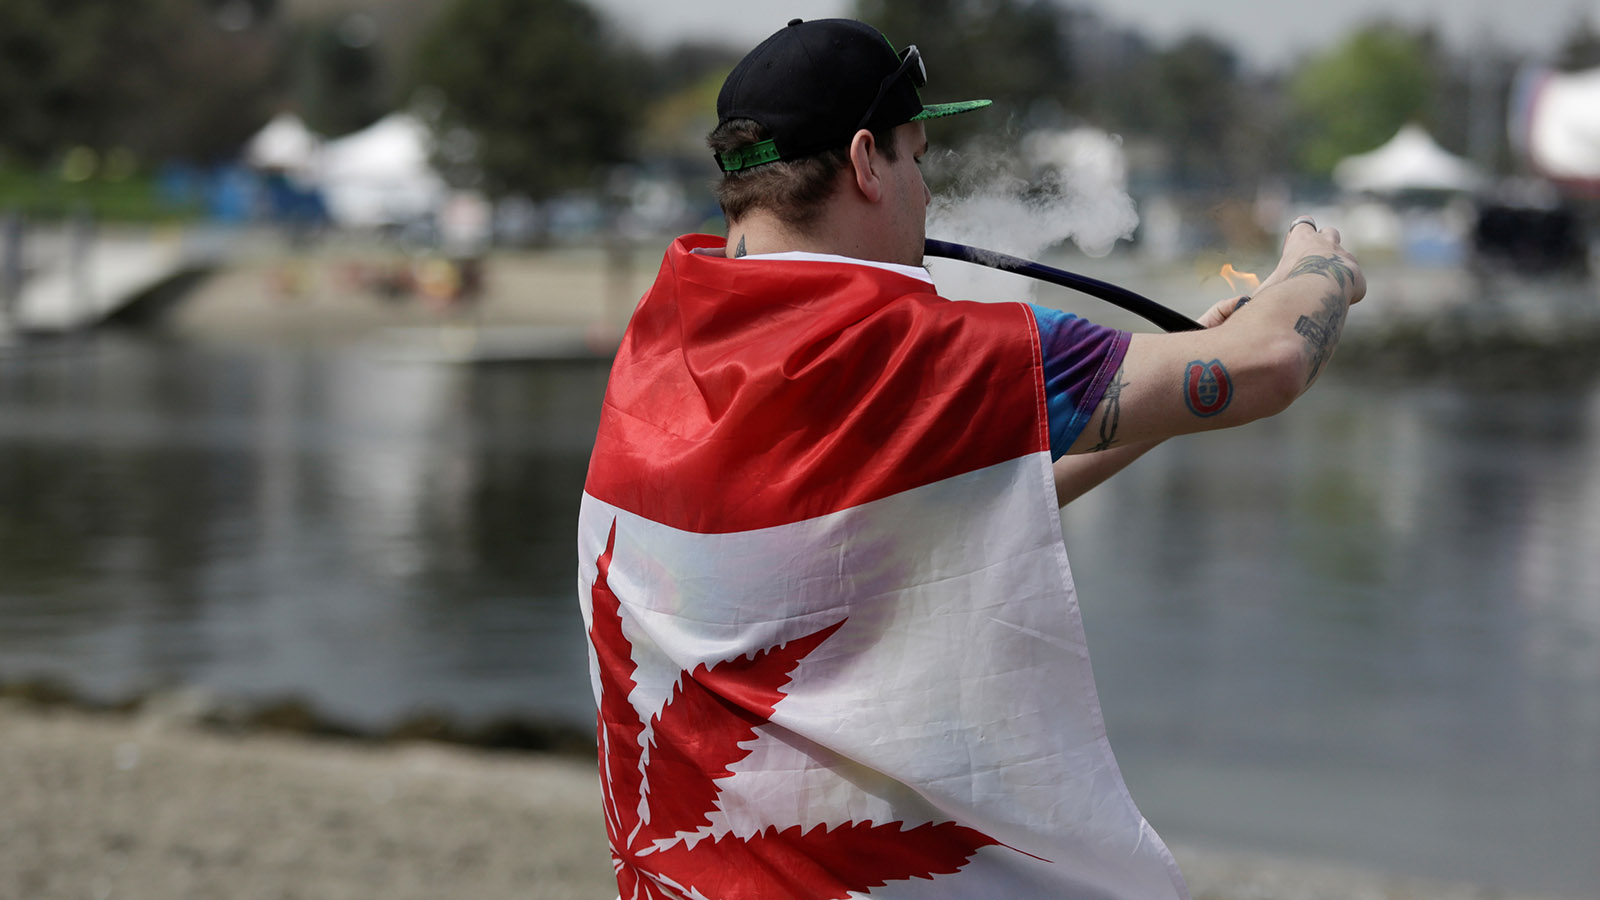 Kevin Lachapelle, 31, of Nanaimo is draped in a pot-leaf flag as he smokes from a pipe at the annual 4/20 marijuana event at Sunset Beach in Vancouver